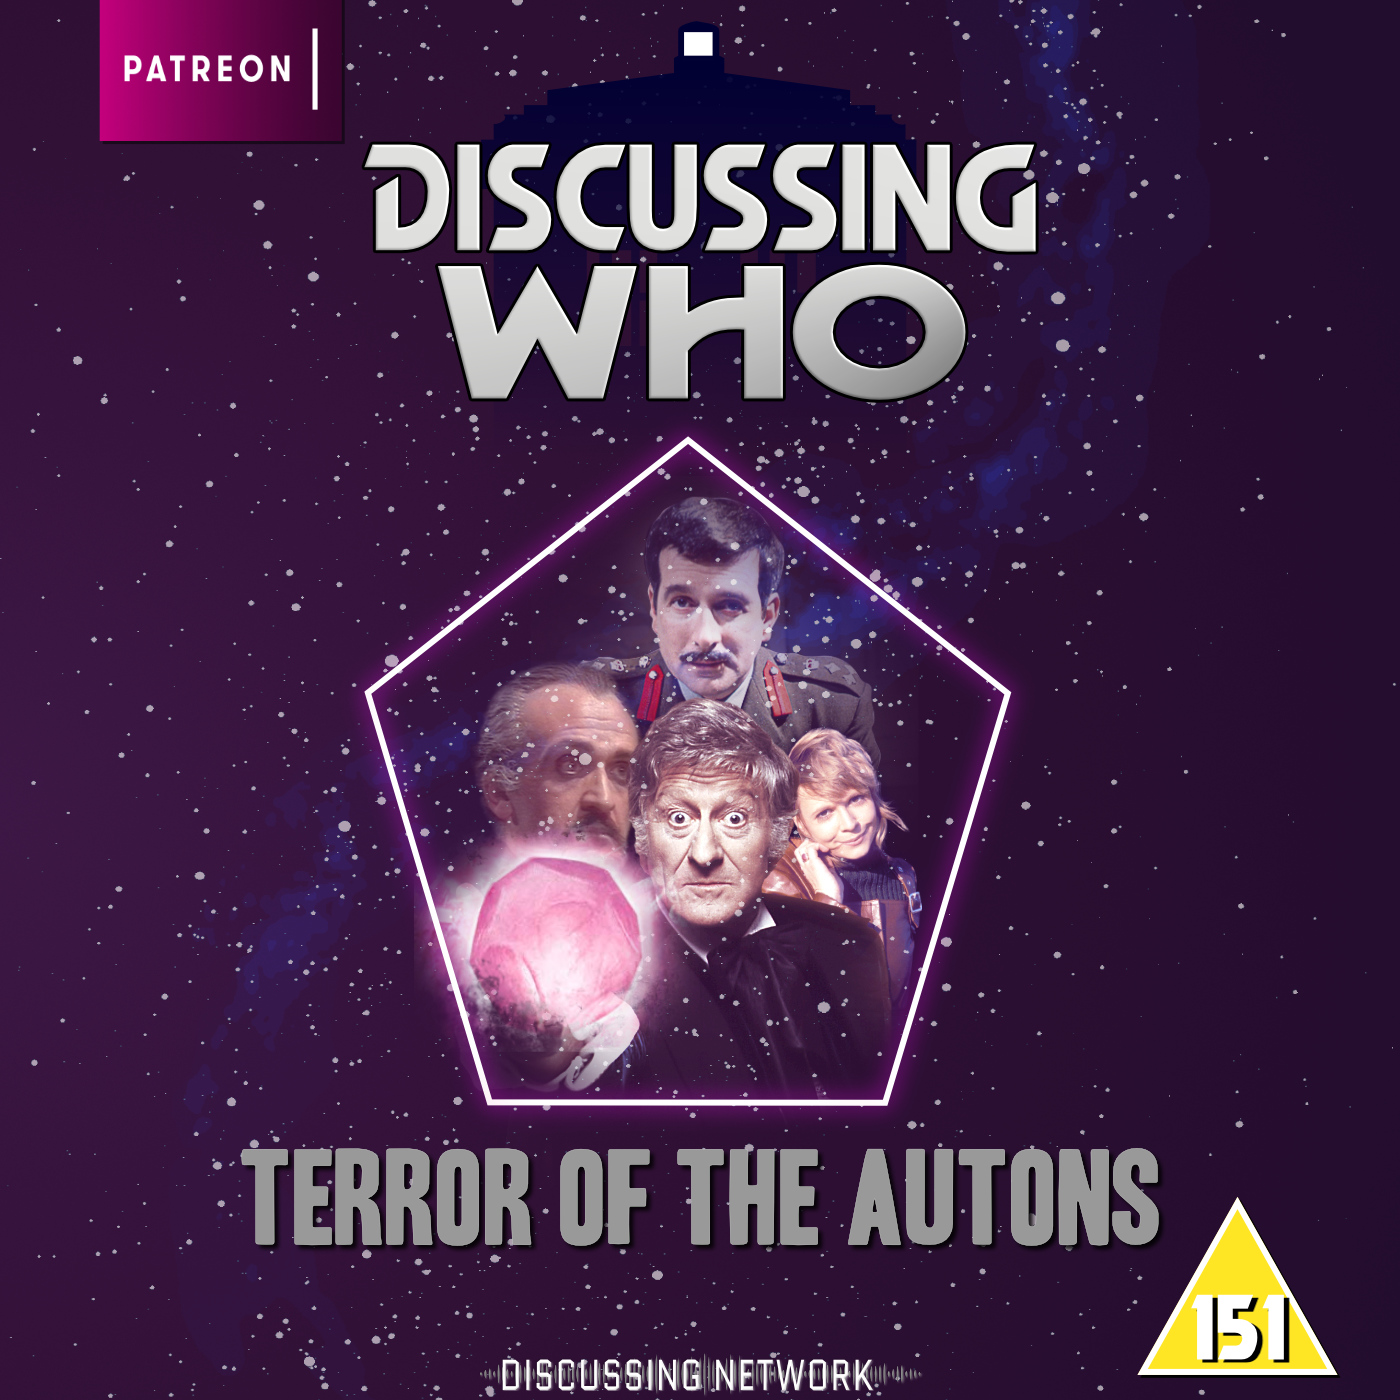 Terror of the Autons (TV) | Doctor Who Wiki | Fandom